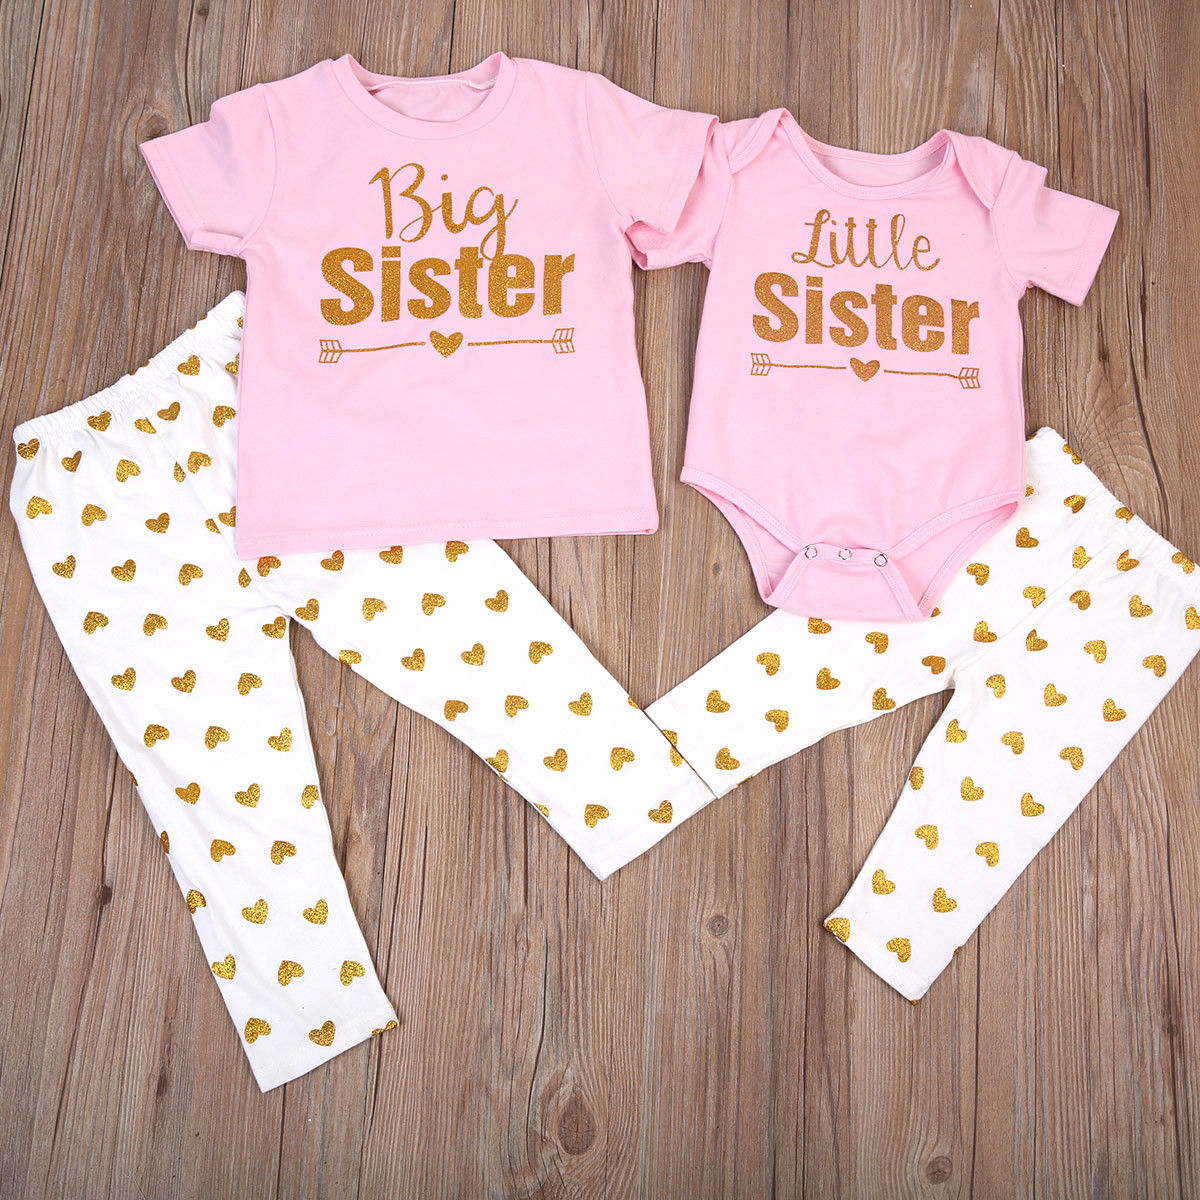 Lovely Baby Kids Girls Matching Outfits T-shirt Romper Tops+Print Long Pants Outfits Clothes Set Summer Pink Littler Big Sister